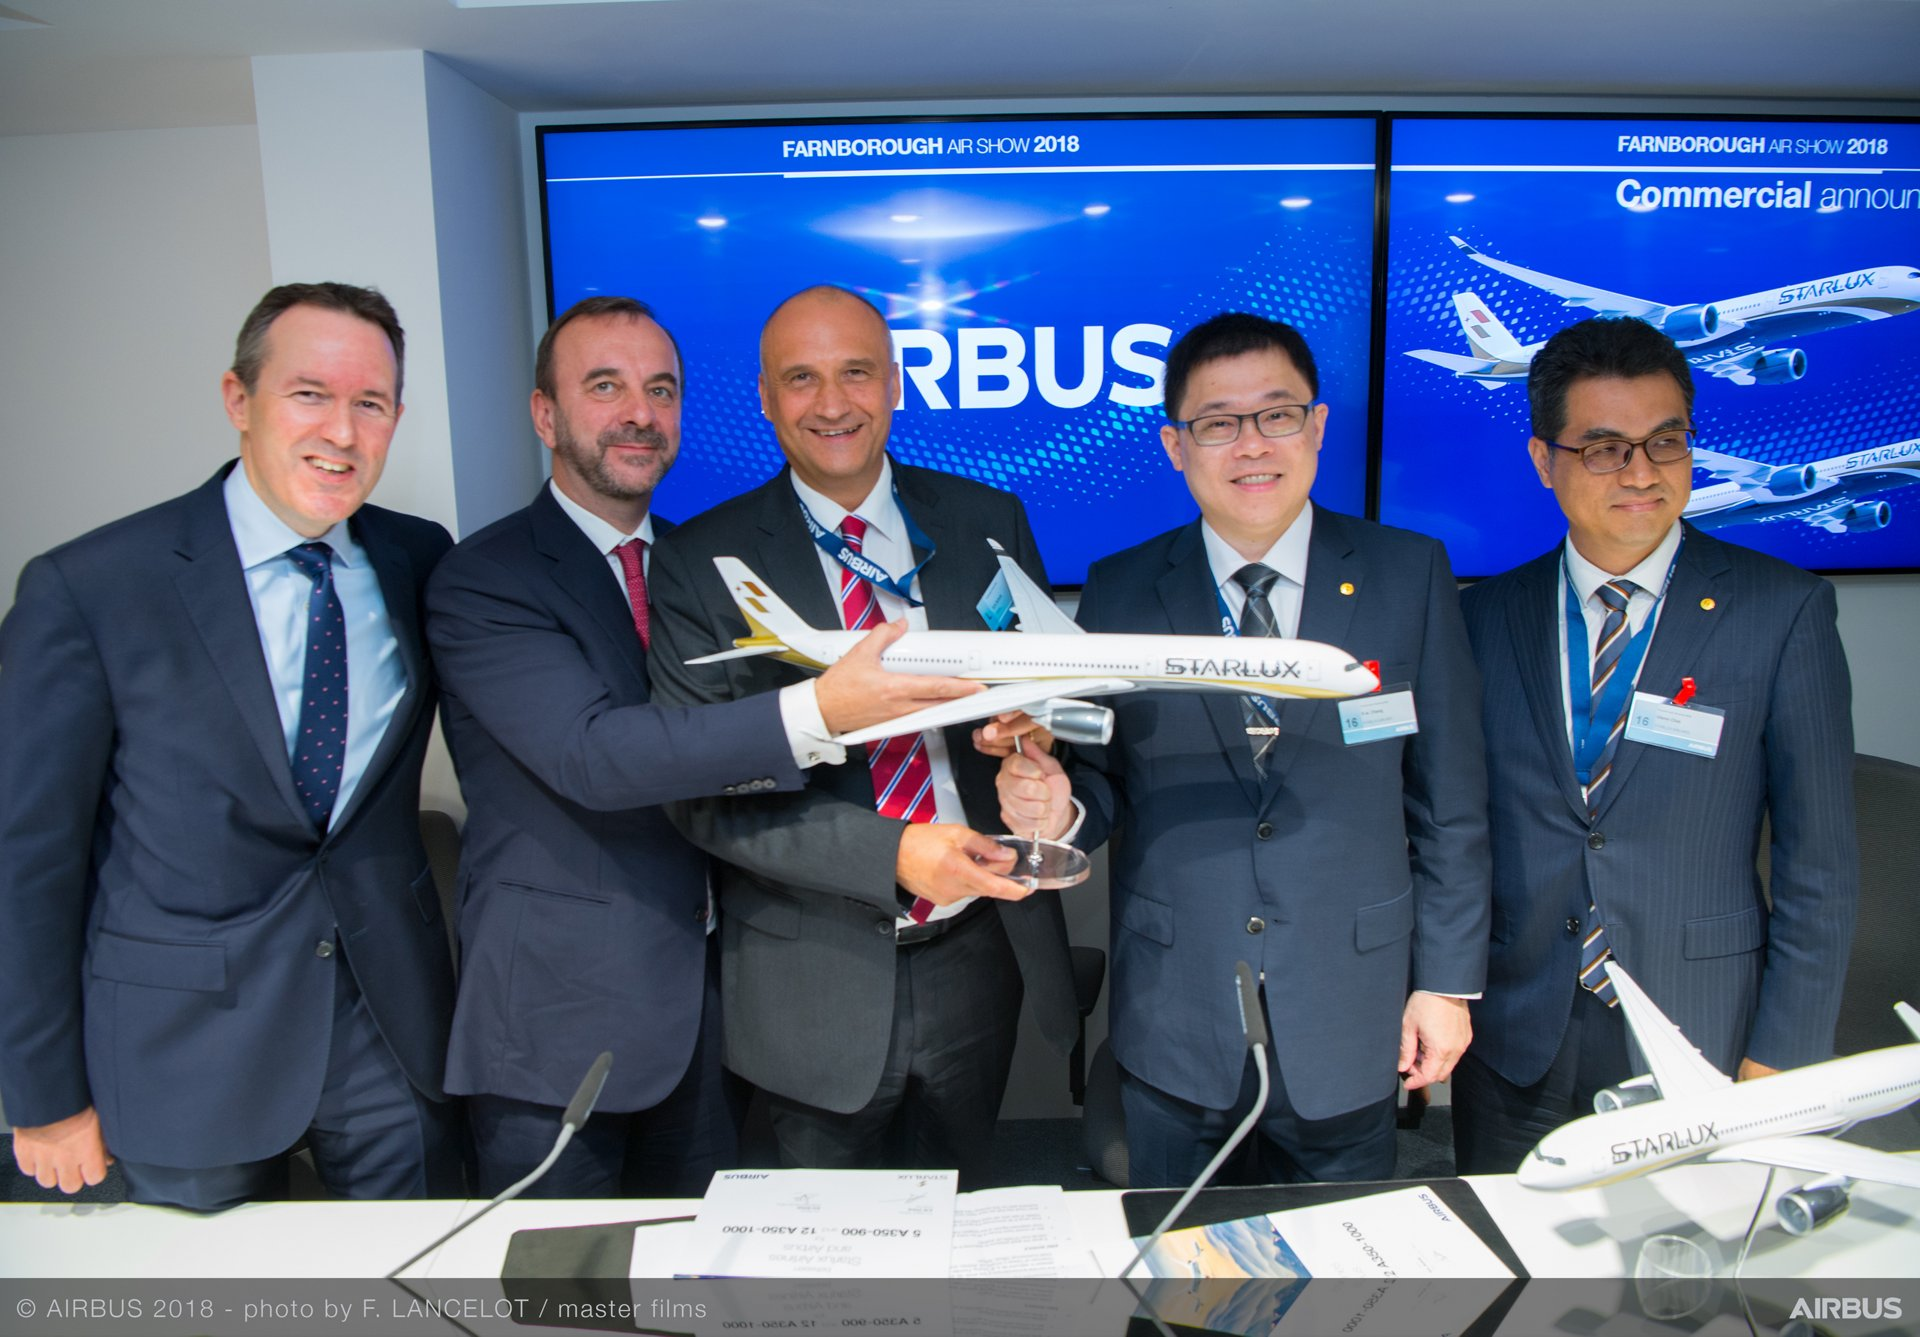 STARLUX Airlines' Memorandum of Understanding with Airbus to purchase 17 A350-1000 jetliners for deliveries beginning in late 2021 was announced at a Farnborough Airshow press conference with (from left to right): Rolls-Royce Chief Customer Officer Dominic Horwood; Airbus Executive Vice President Asia Jean-François Laval; Airbus Chief Commercial Officer Eric Schulz; STARLUX Airlines Founder & Chairman K.W. Chang and STARLUX Airlines President Glenn Chai